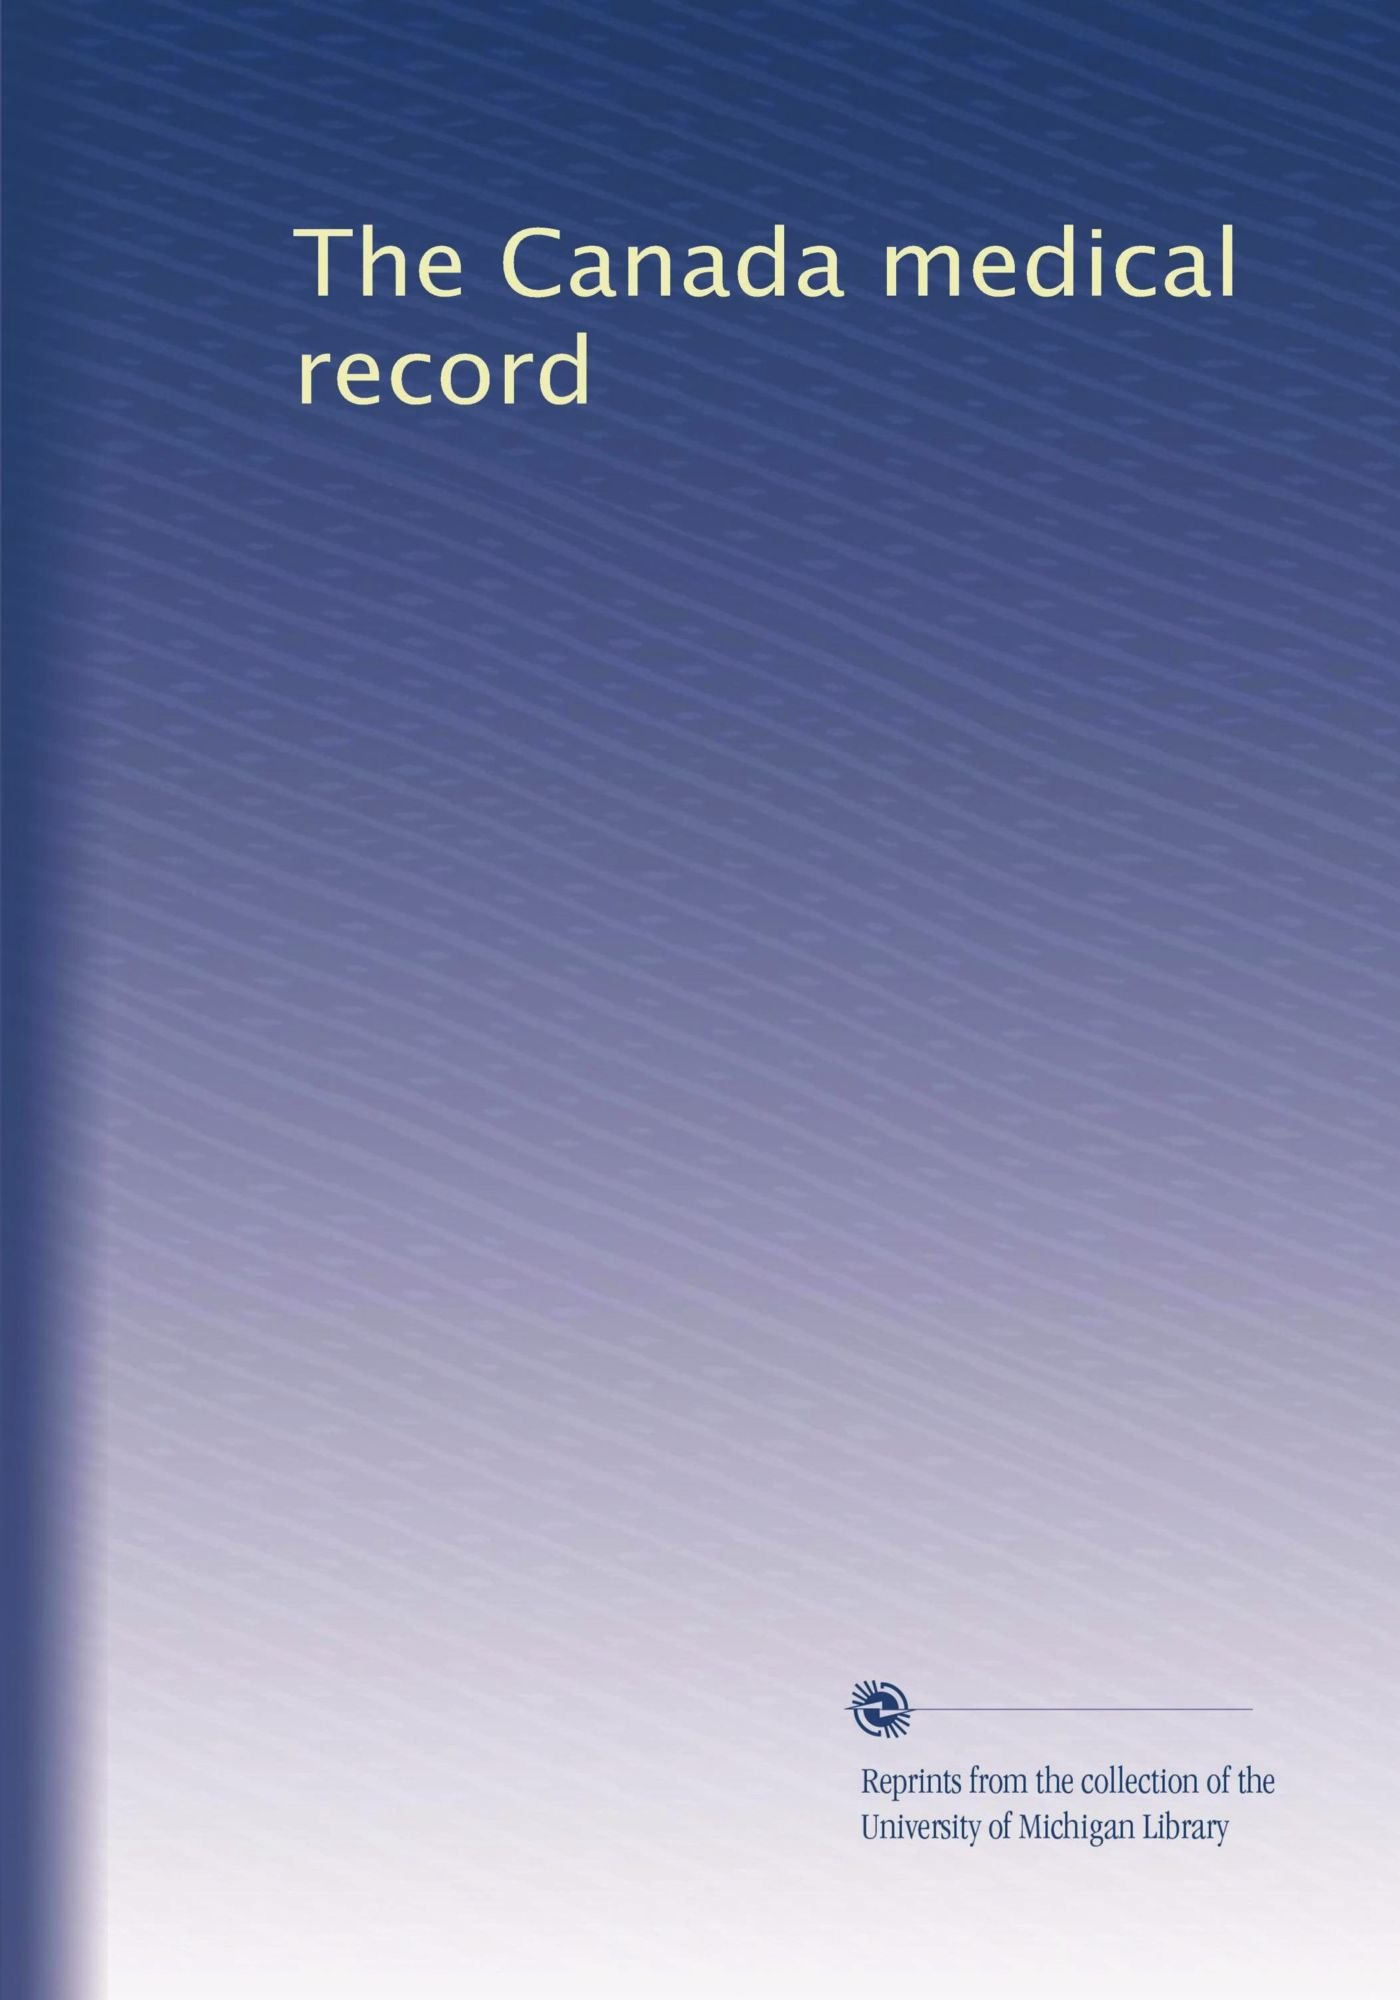 The Canada medical record pdf